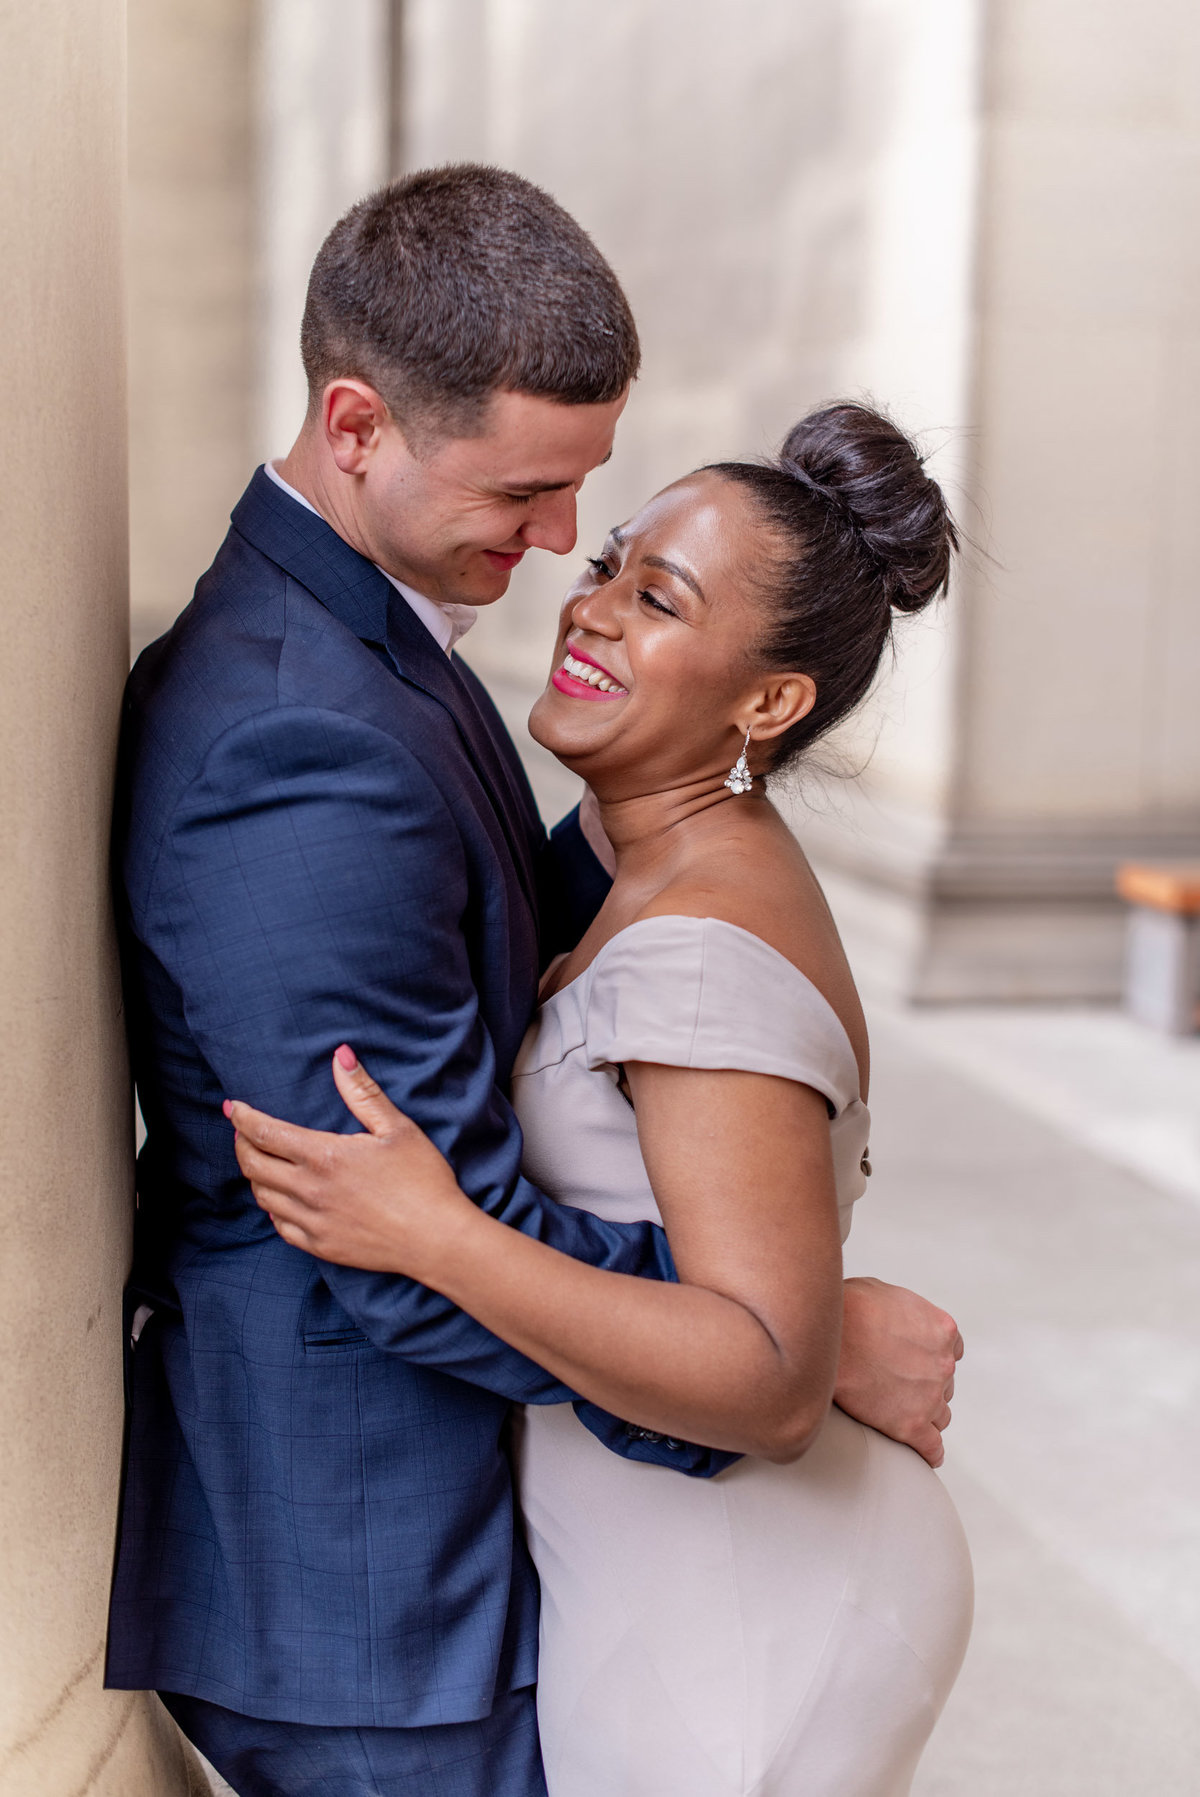 DowntownPittsburghPAWeddingEngagementPhotography-14